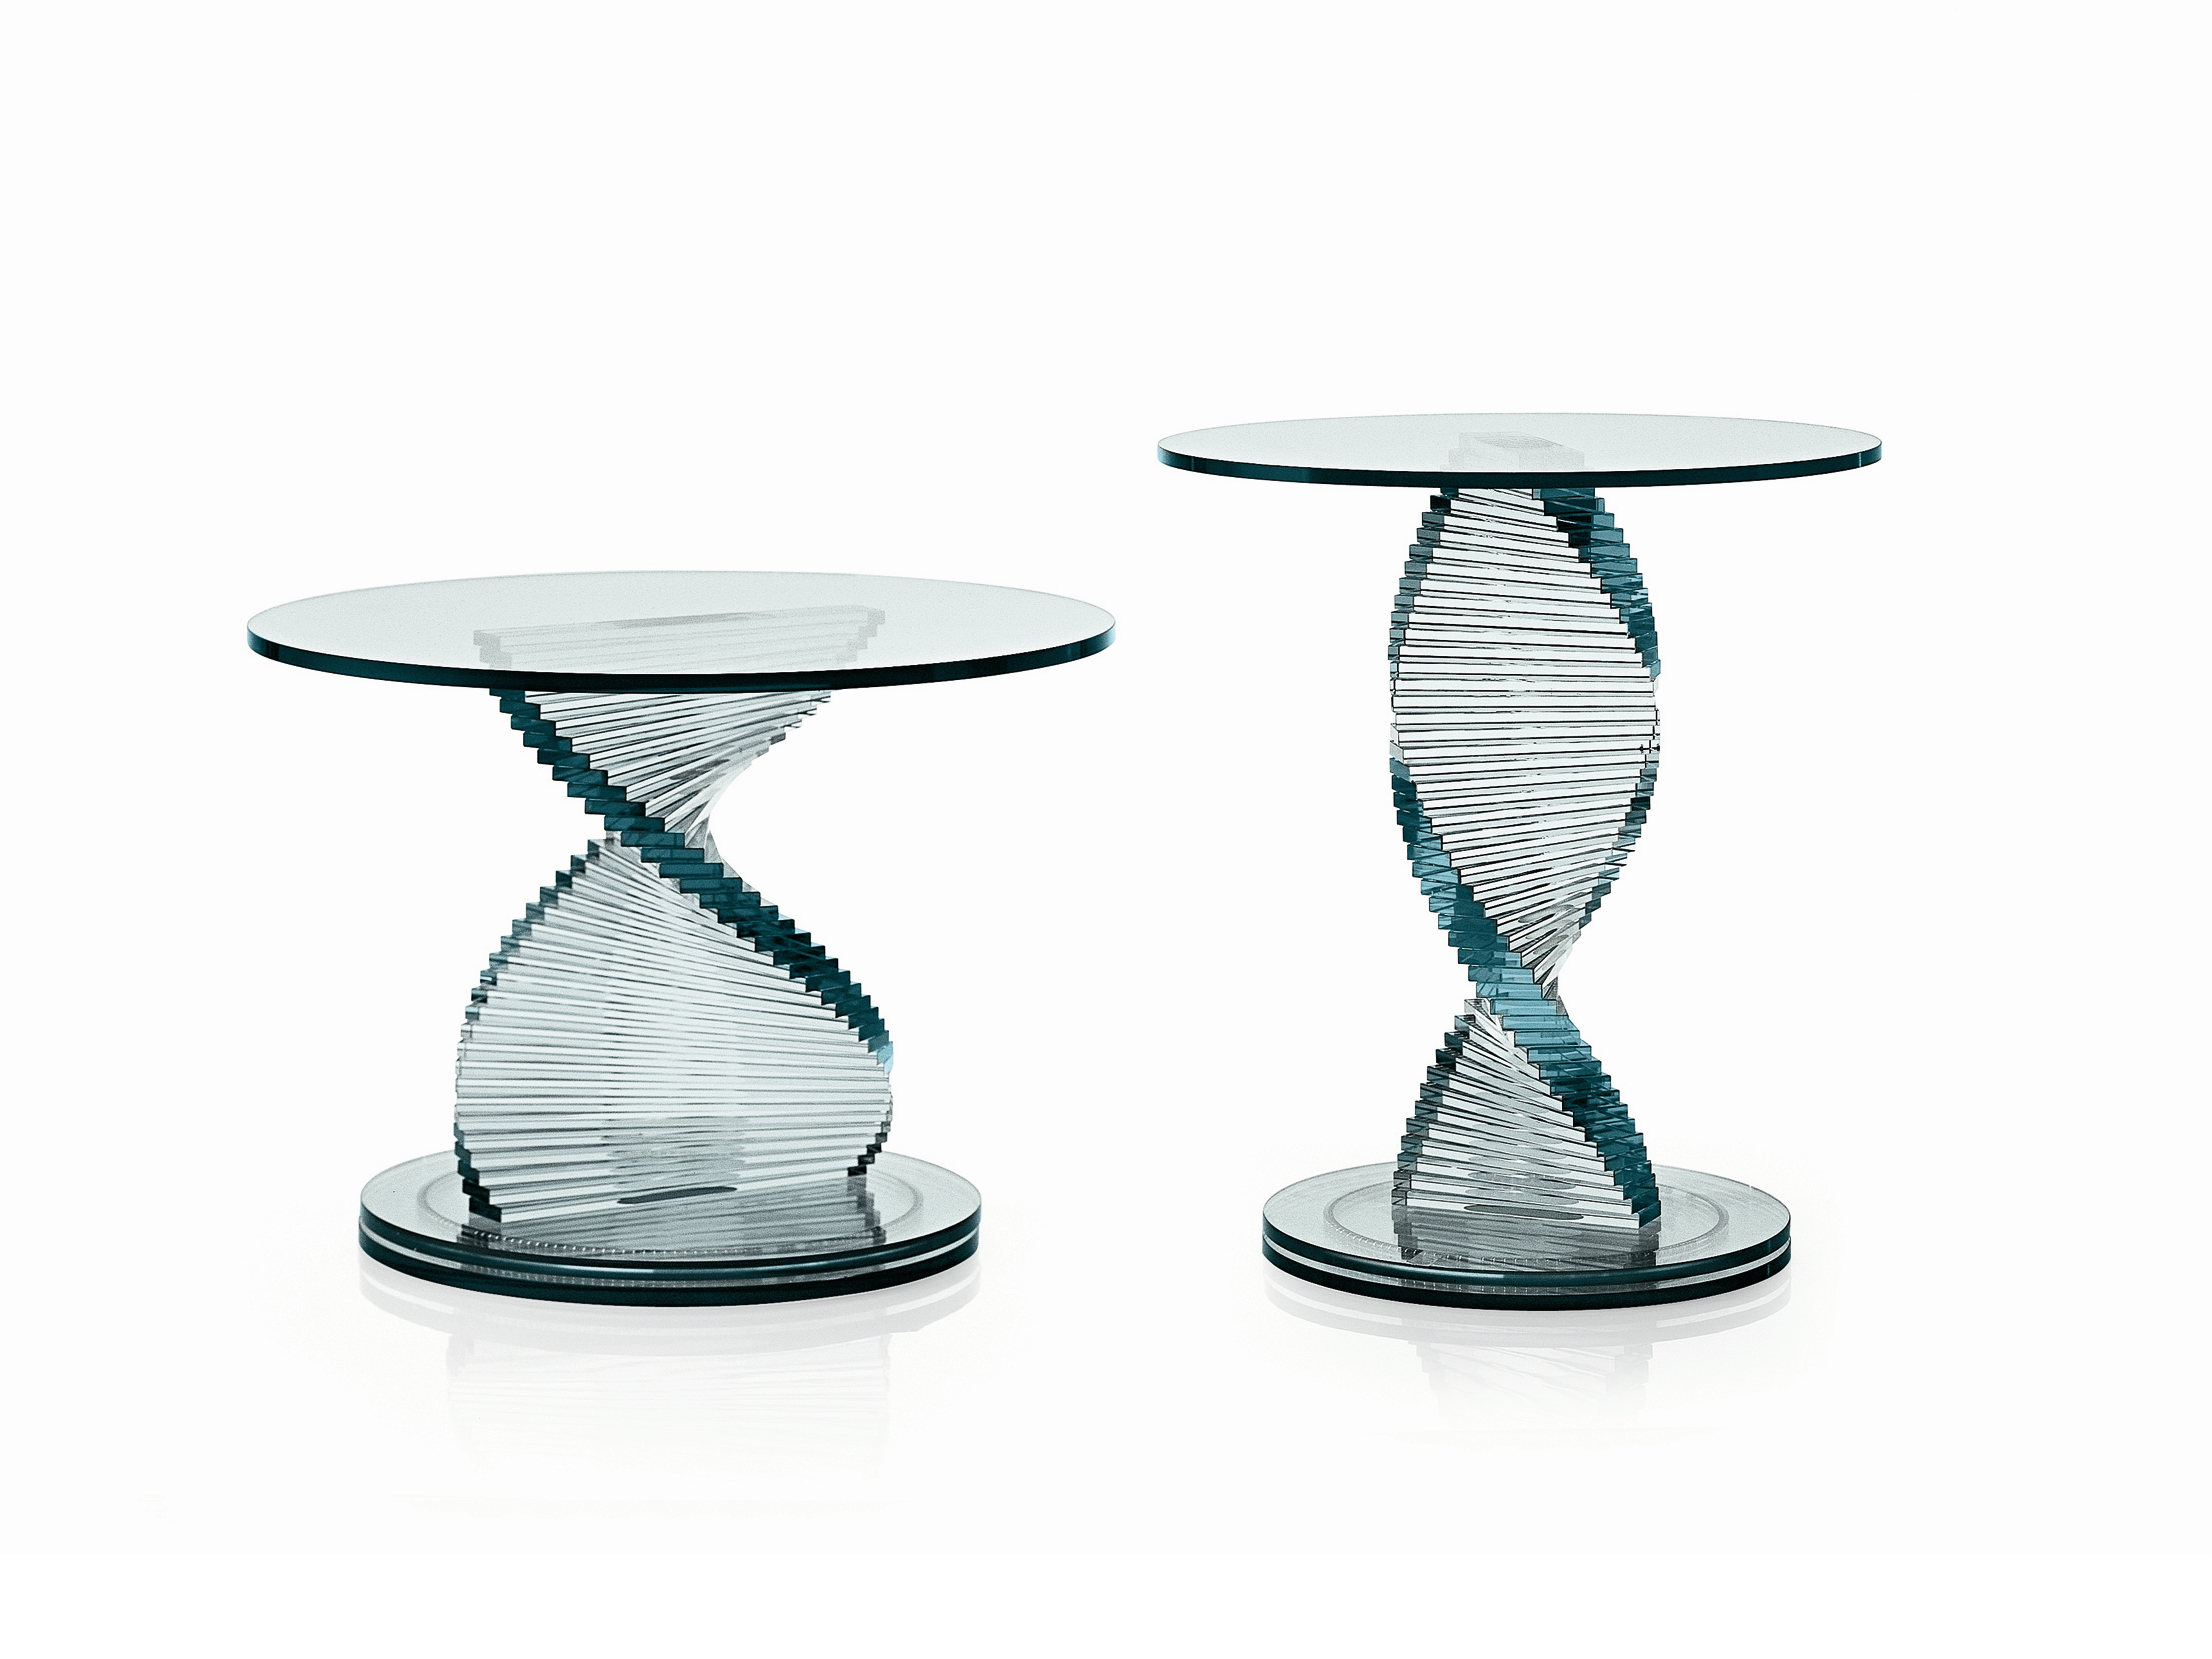 Table basse en verre elica by t d tonelli design design isao hosoe Table en verre design